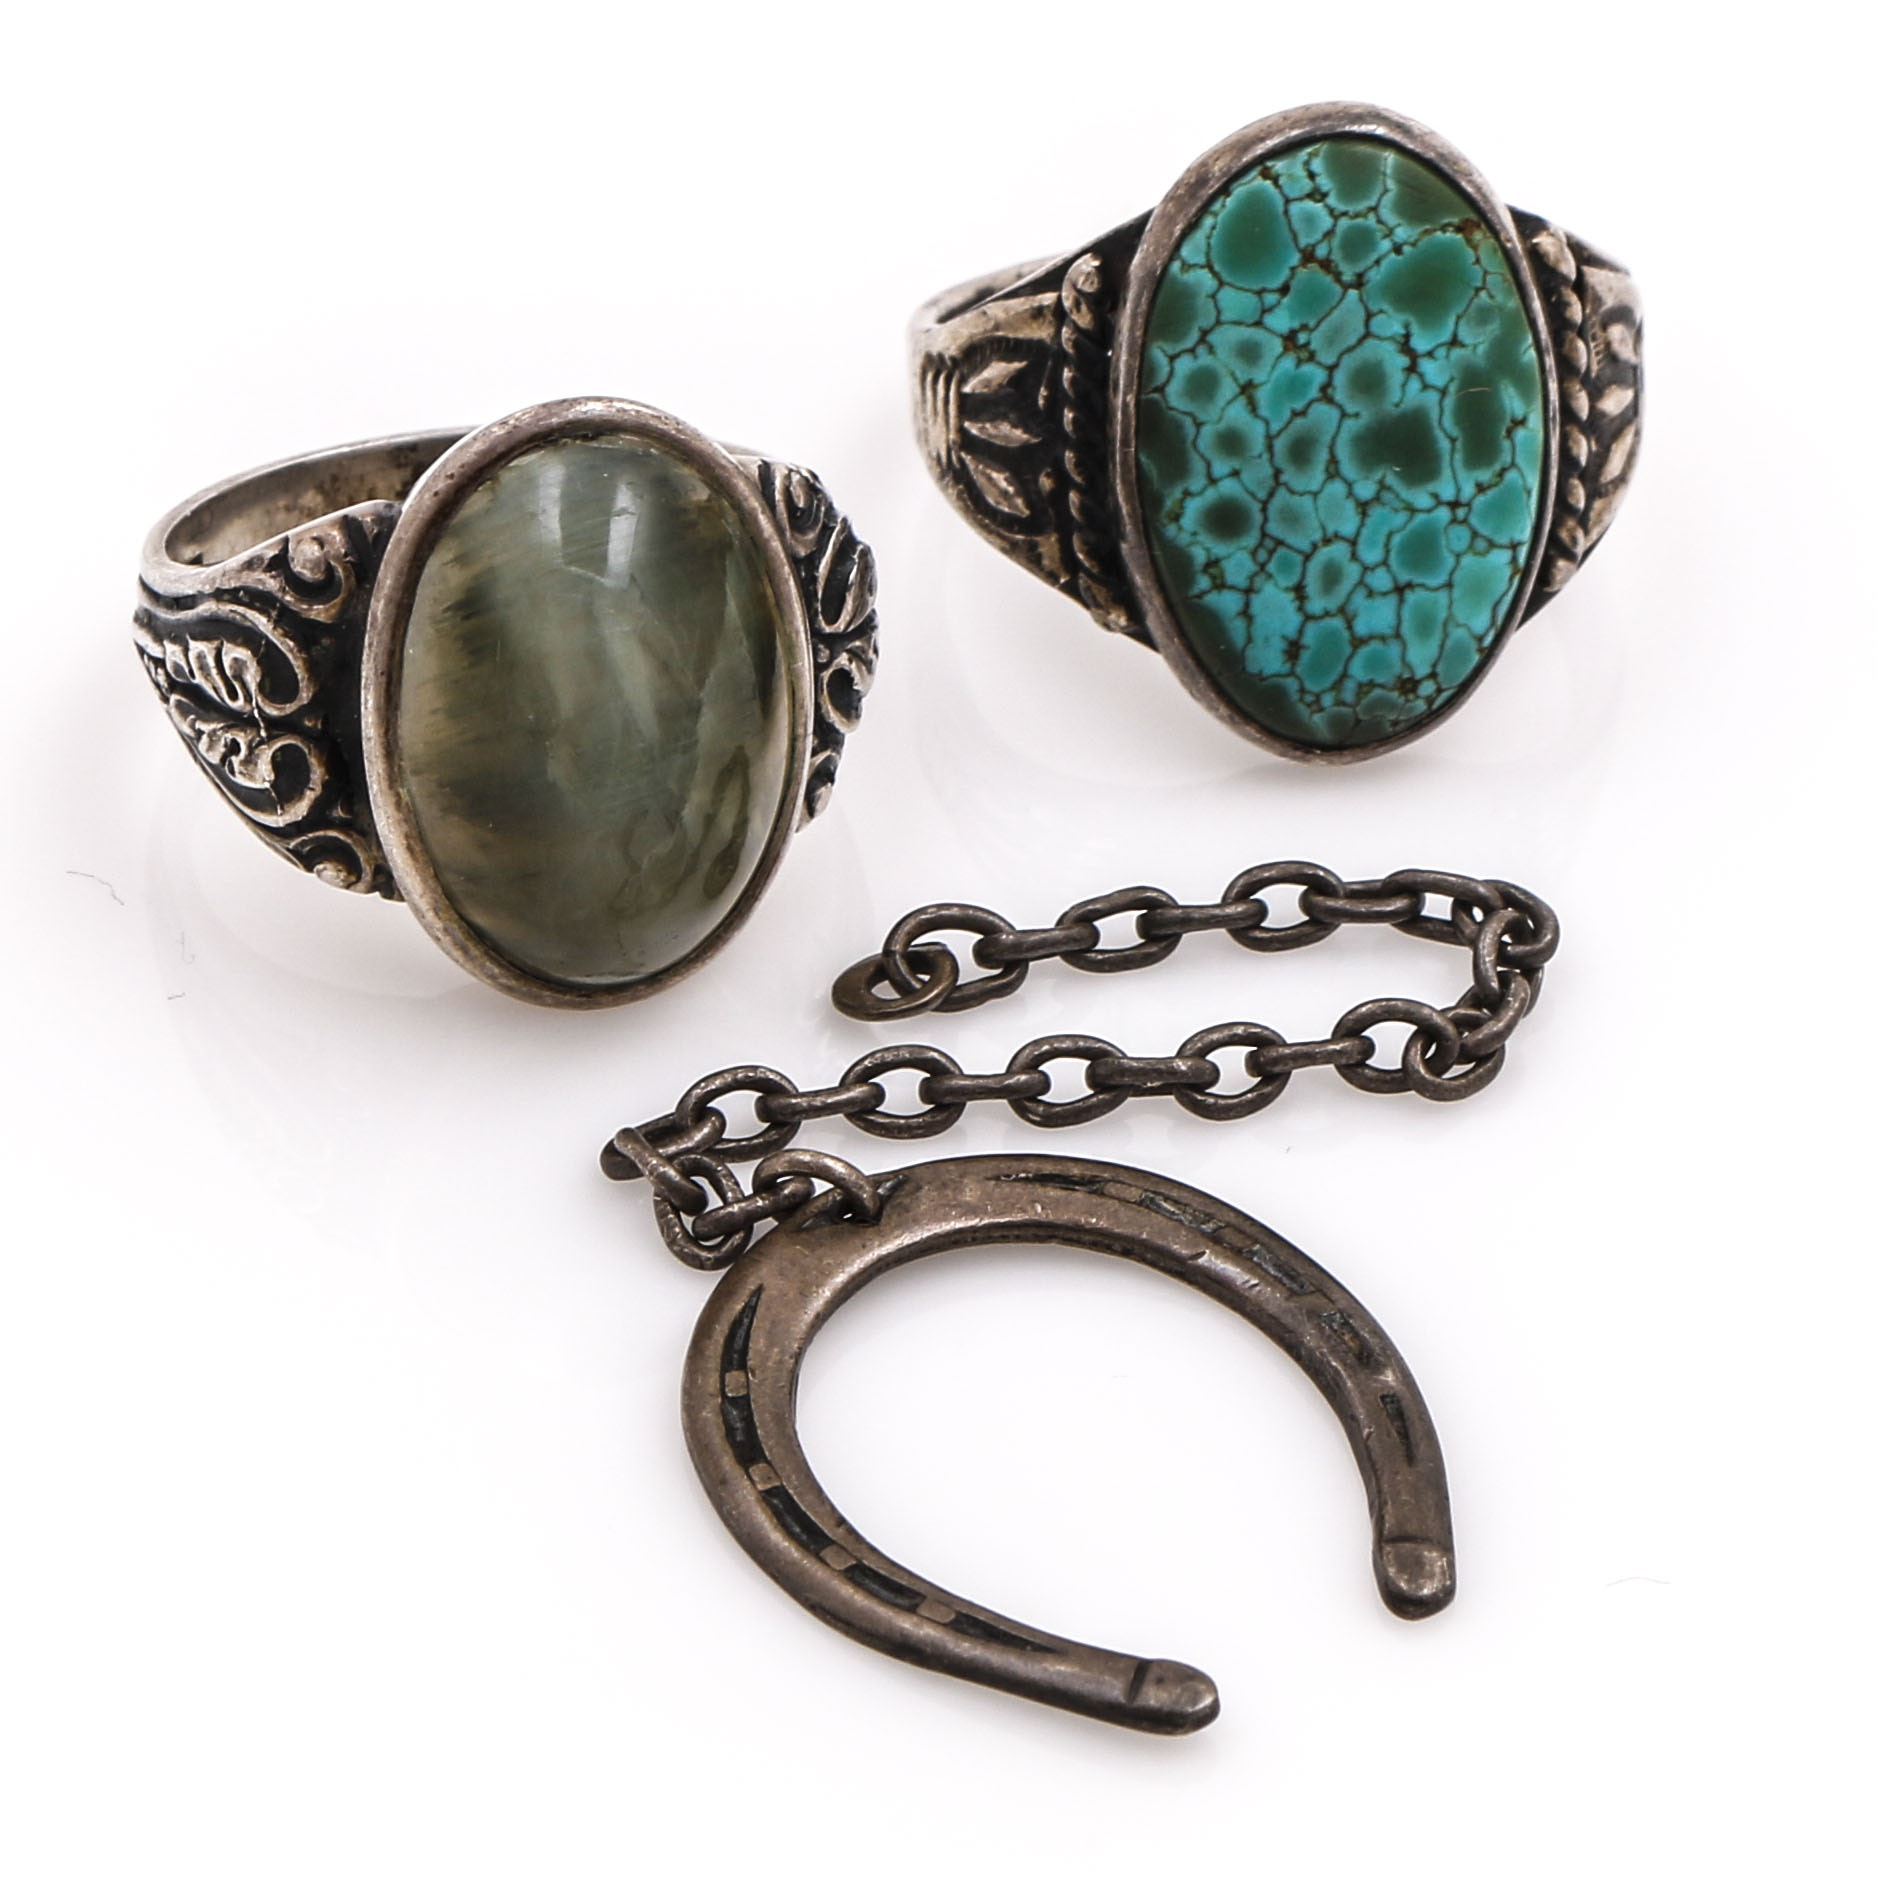 800 and Sterling Silver Turquoise and Cat's Eye Orthoclase Rings and Horseshoe Charm